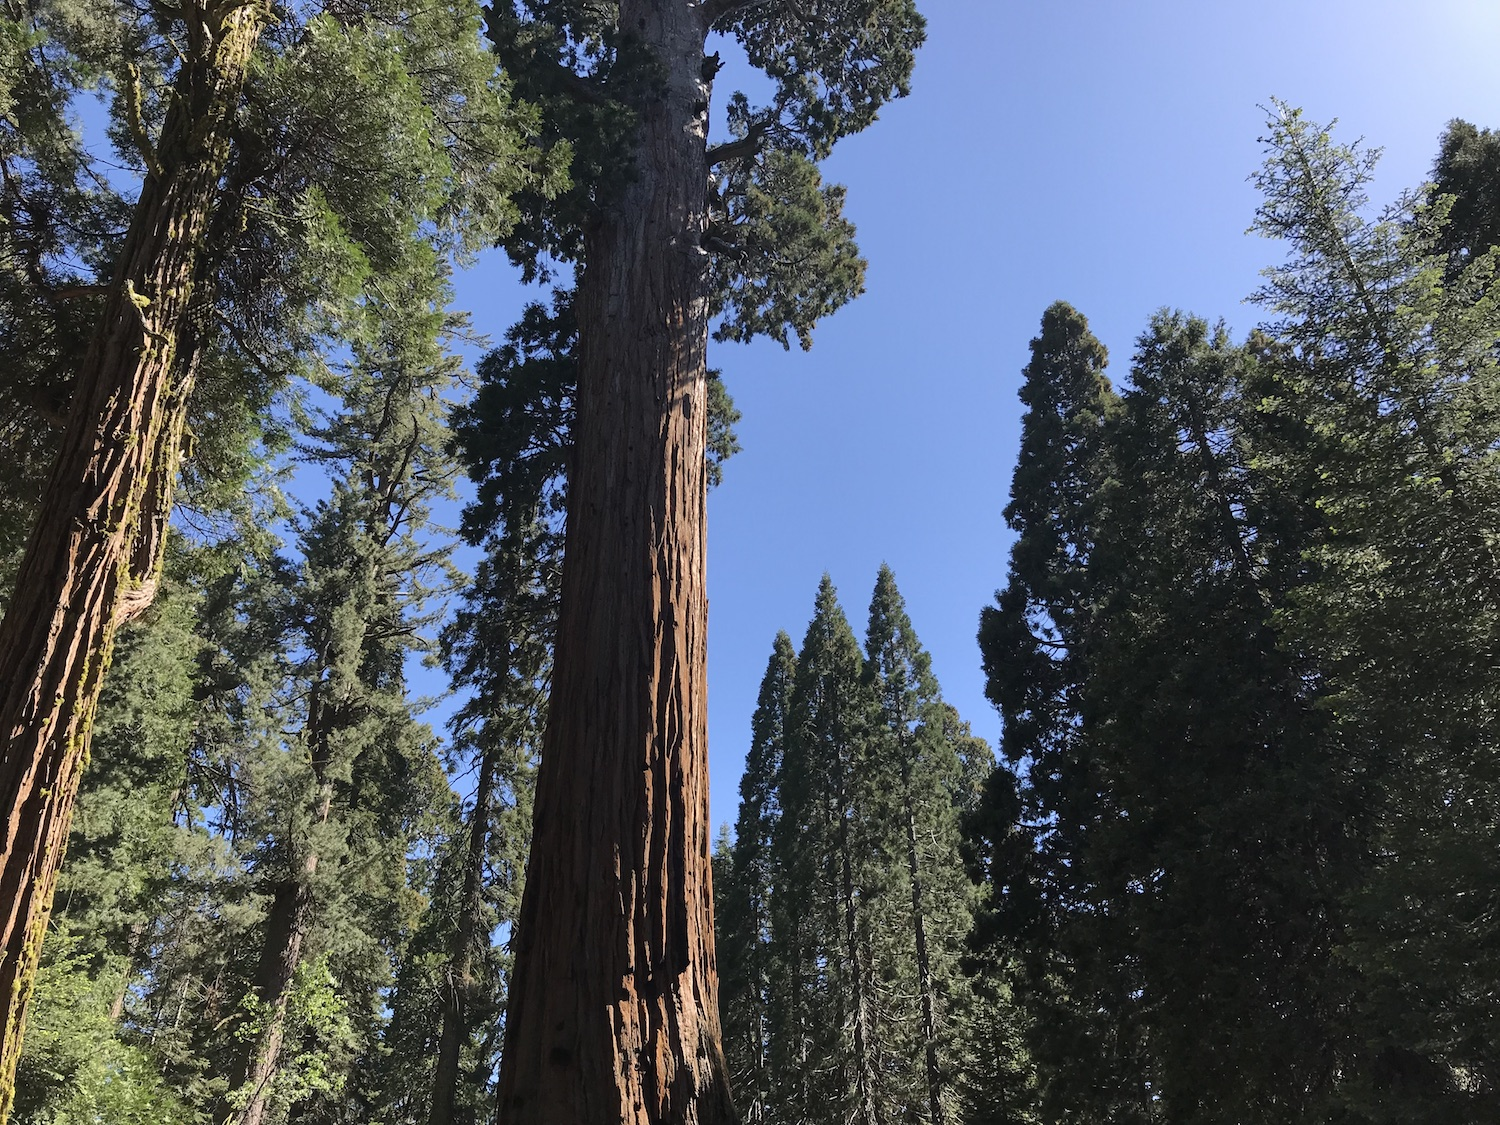 General Grant Tree & Kings Canyon National Park